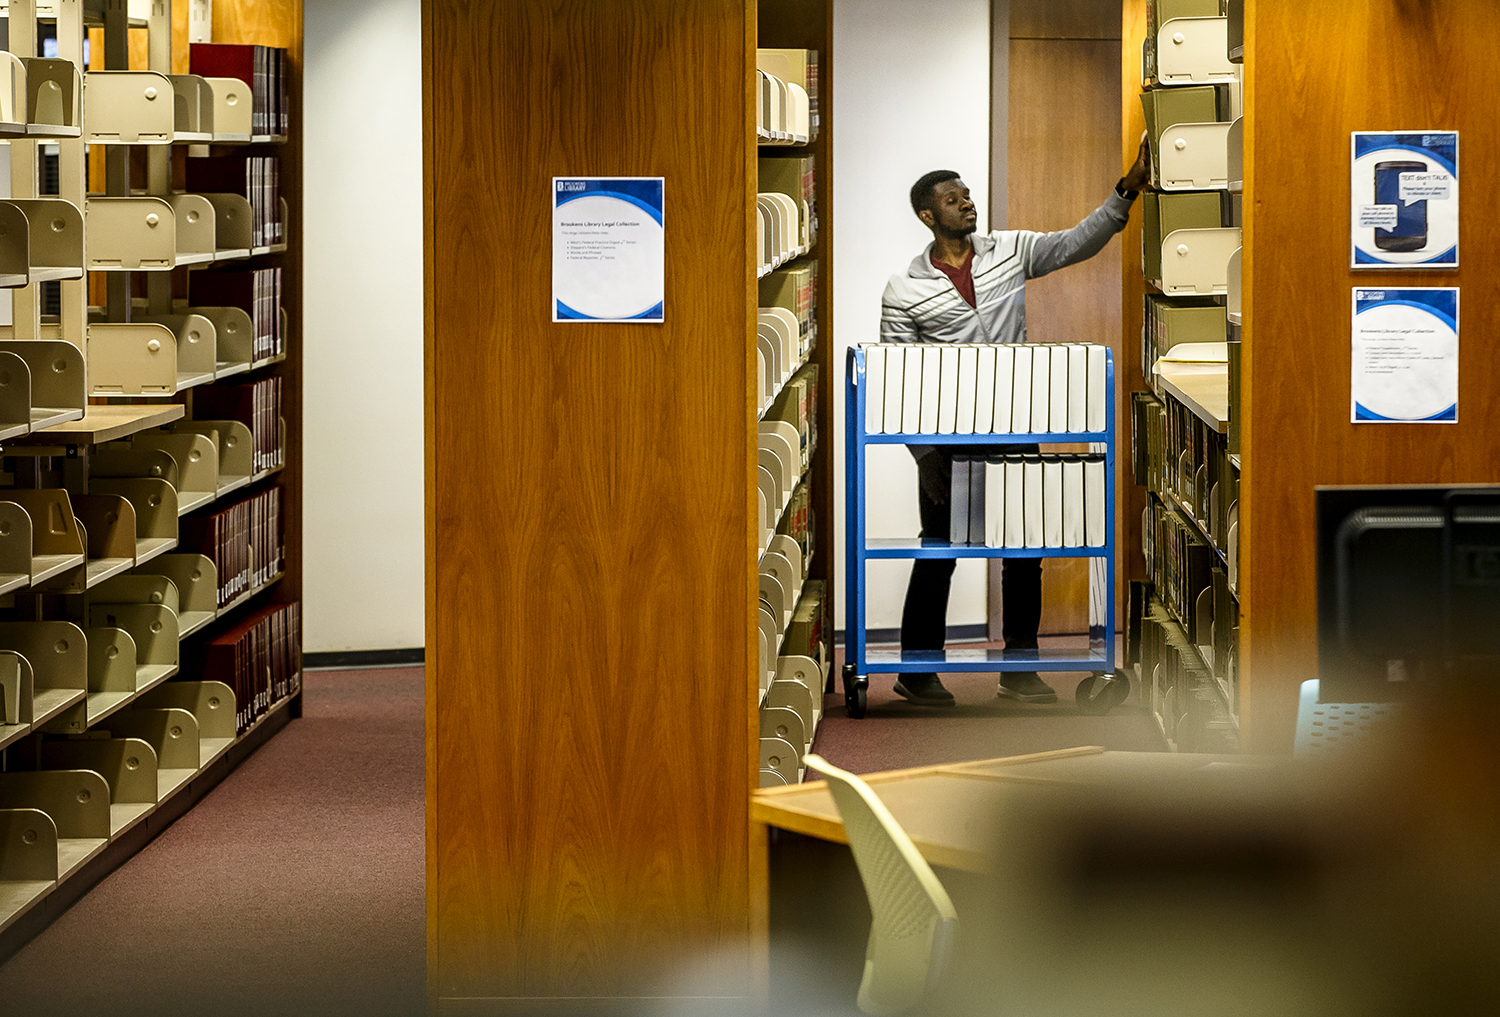 Daniel Asare, a student assistant at the University of Illinois Springfield's Brookens Library, moves volumes of Federal Supplements from one section of the library to another floor, Thursday, April 5, 2018, in Springfield, Ill. University officials are advocating for nearly $600 million in capital spending for the U of I system, specifically the need for library renovations on all three campuses, including a more than $58 million facelift for Brookens Library at UIS. [Justin L. Fowler/The State Journal-Register]